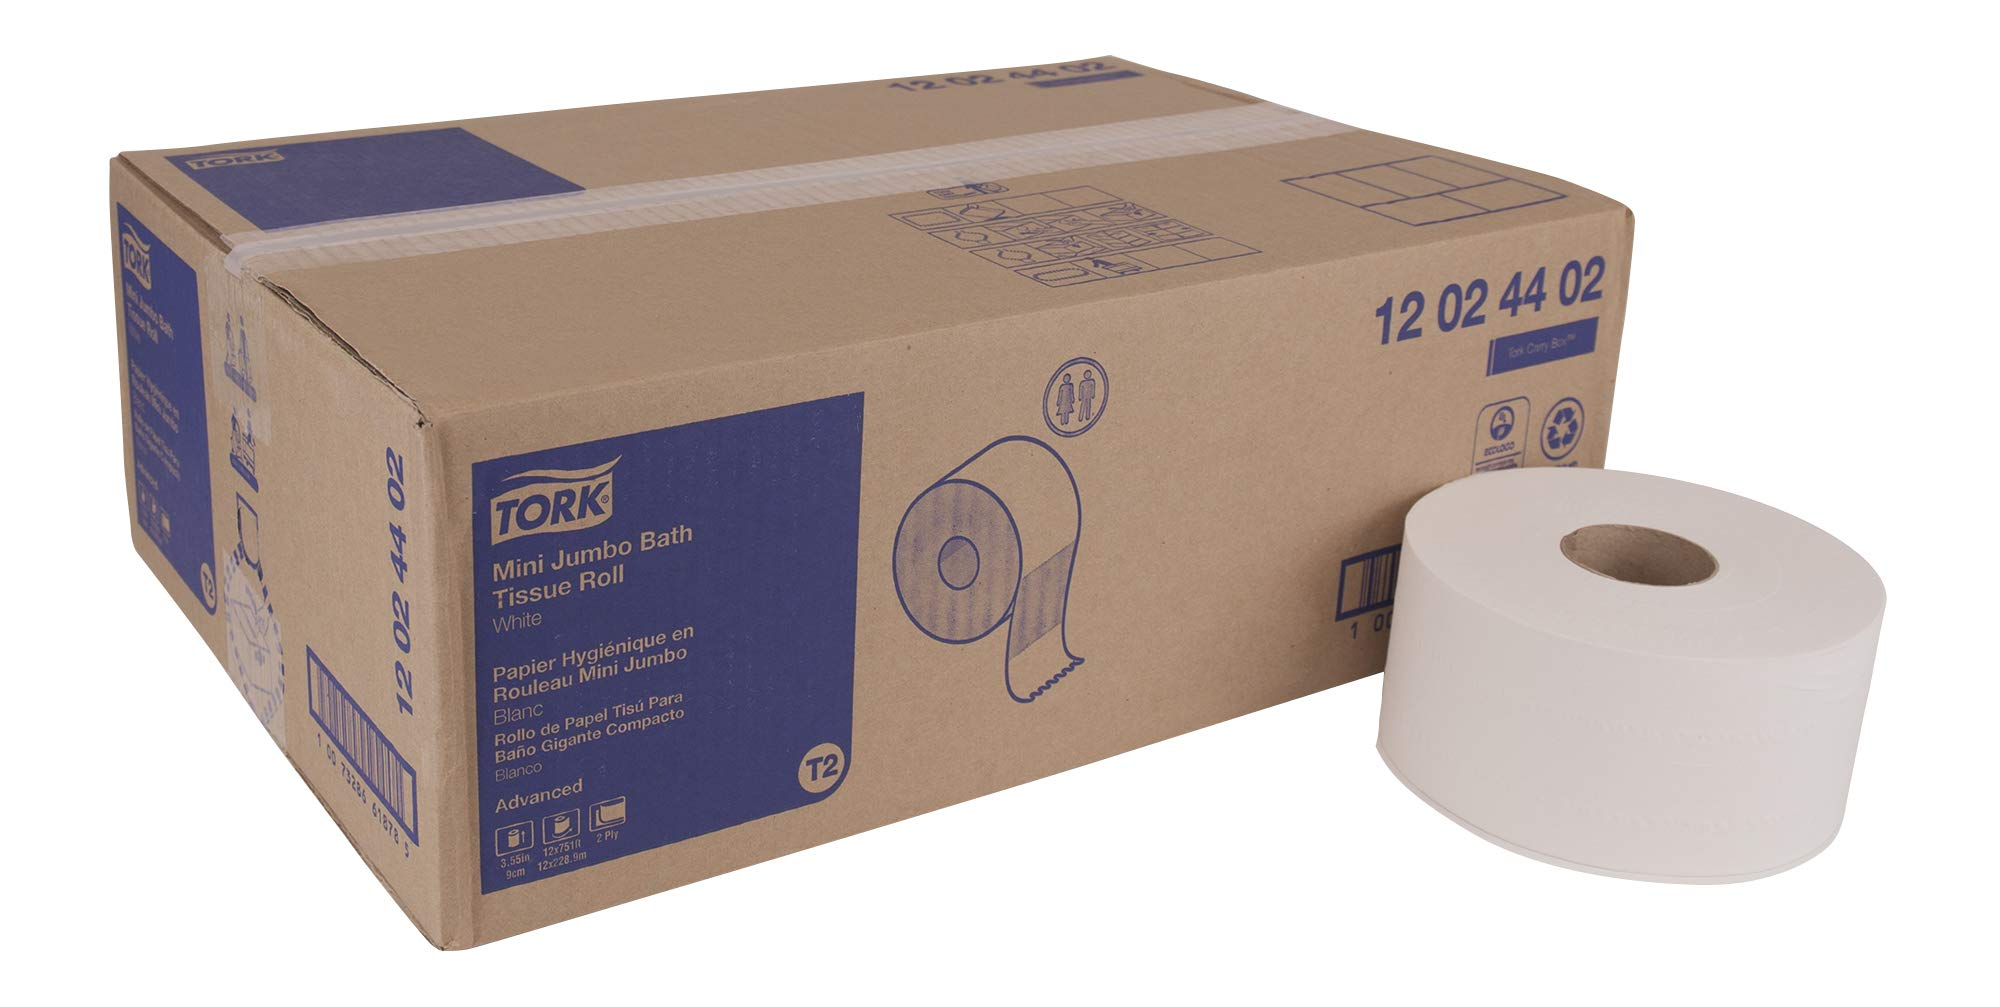 Tork Advanced 12024402 Mini Jumbo Bath Tissue Roll, 2-Ply, 7.36